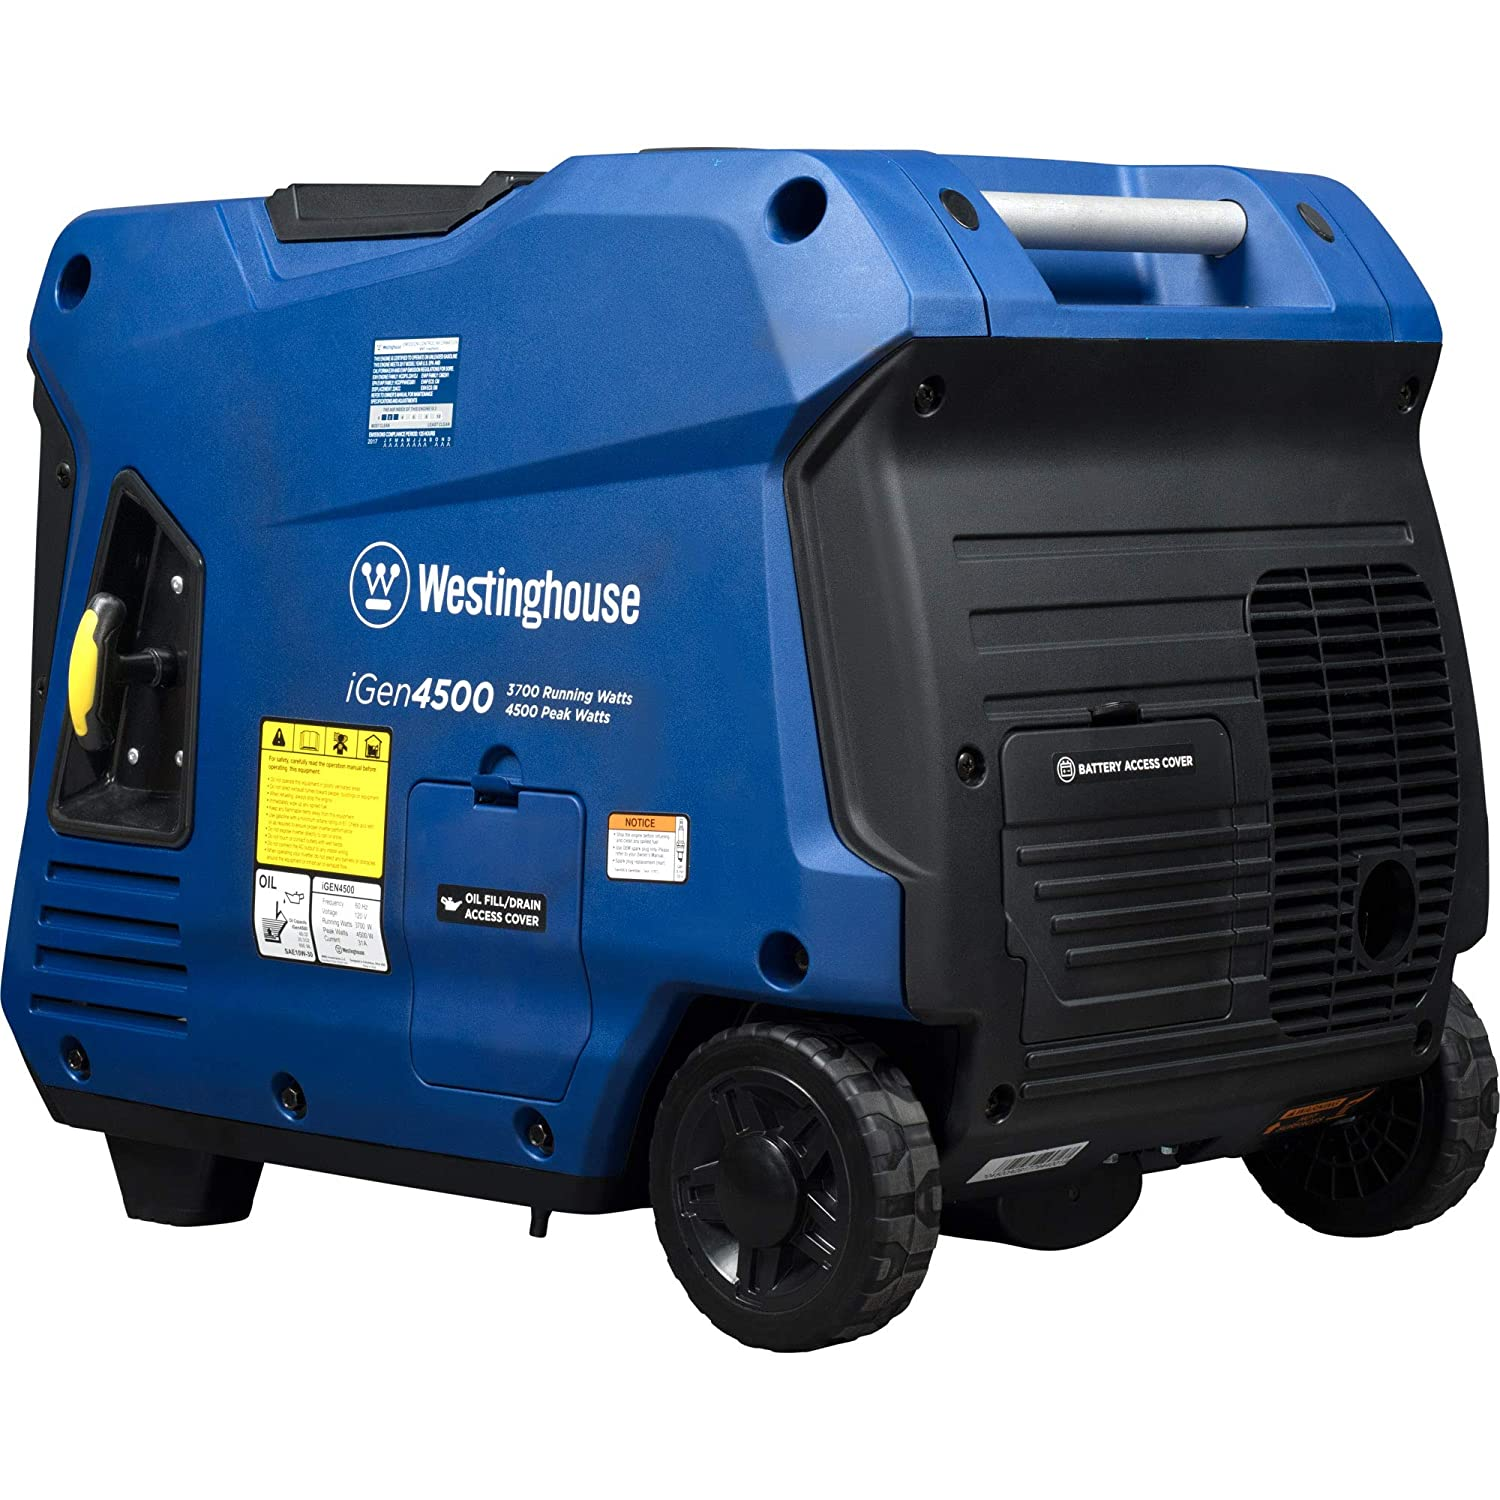 Solar Generator Westinghouse iGen160s Portable Power Station 155Wh Backup Lithium Battery Solar Panel Not Included 110V//100W AC Outlets